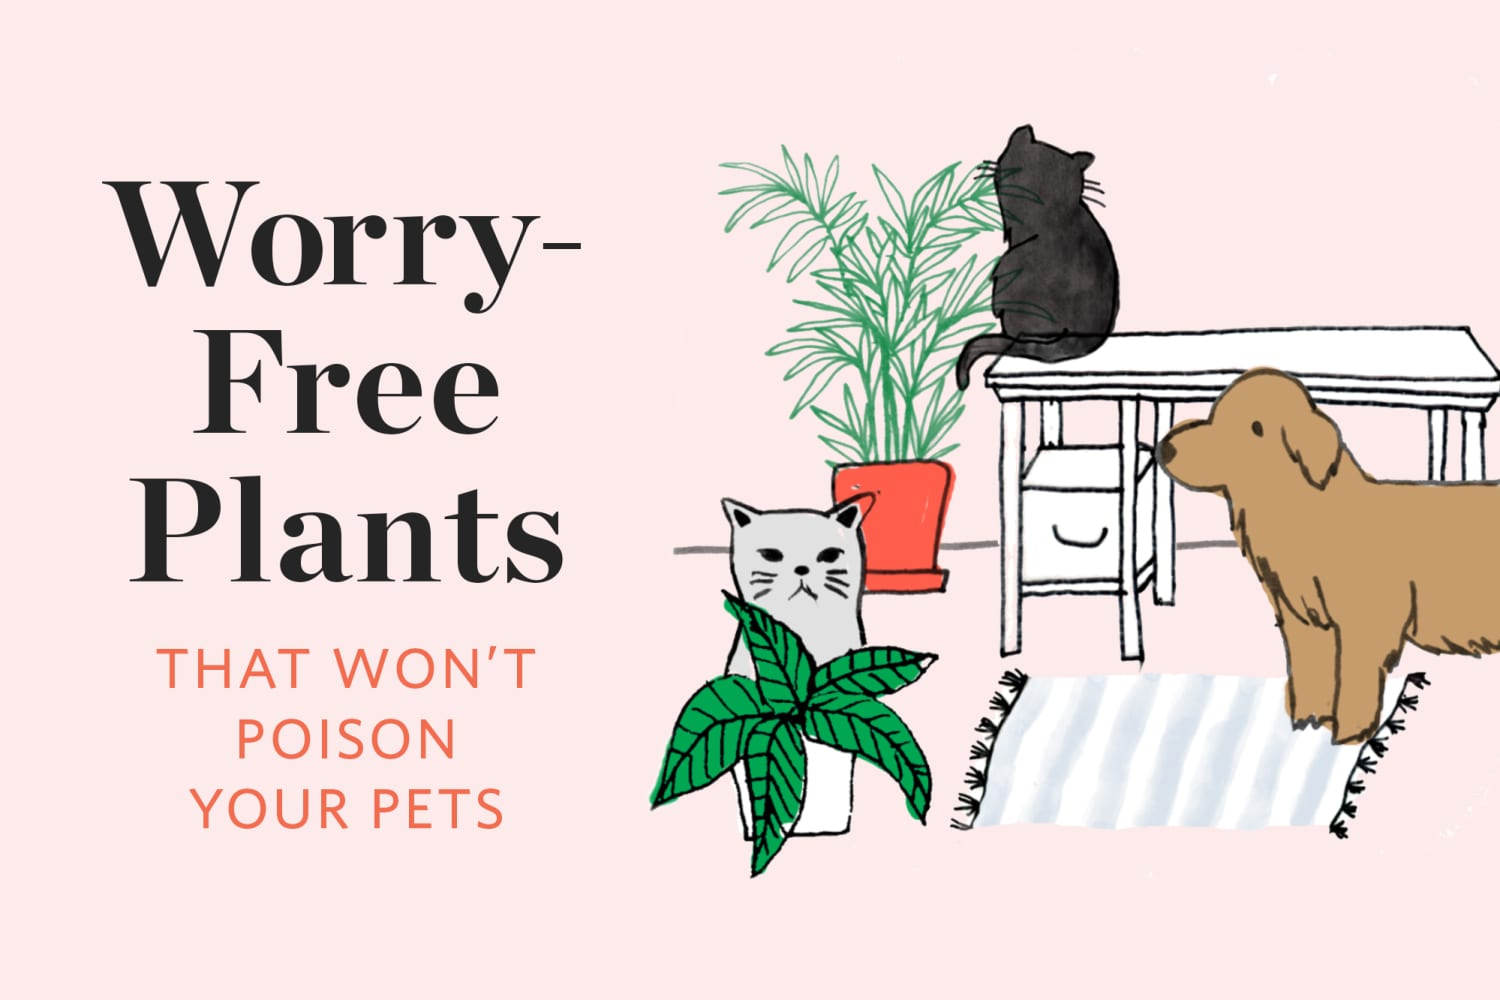 Worry-Free Plants That Won't Poison Your Pets